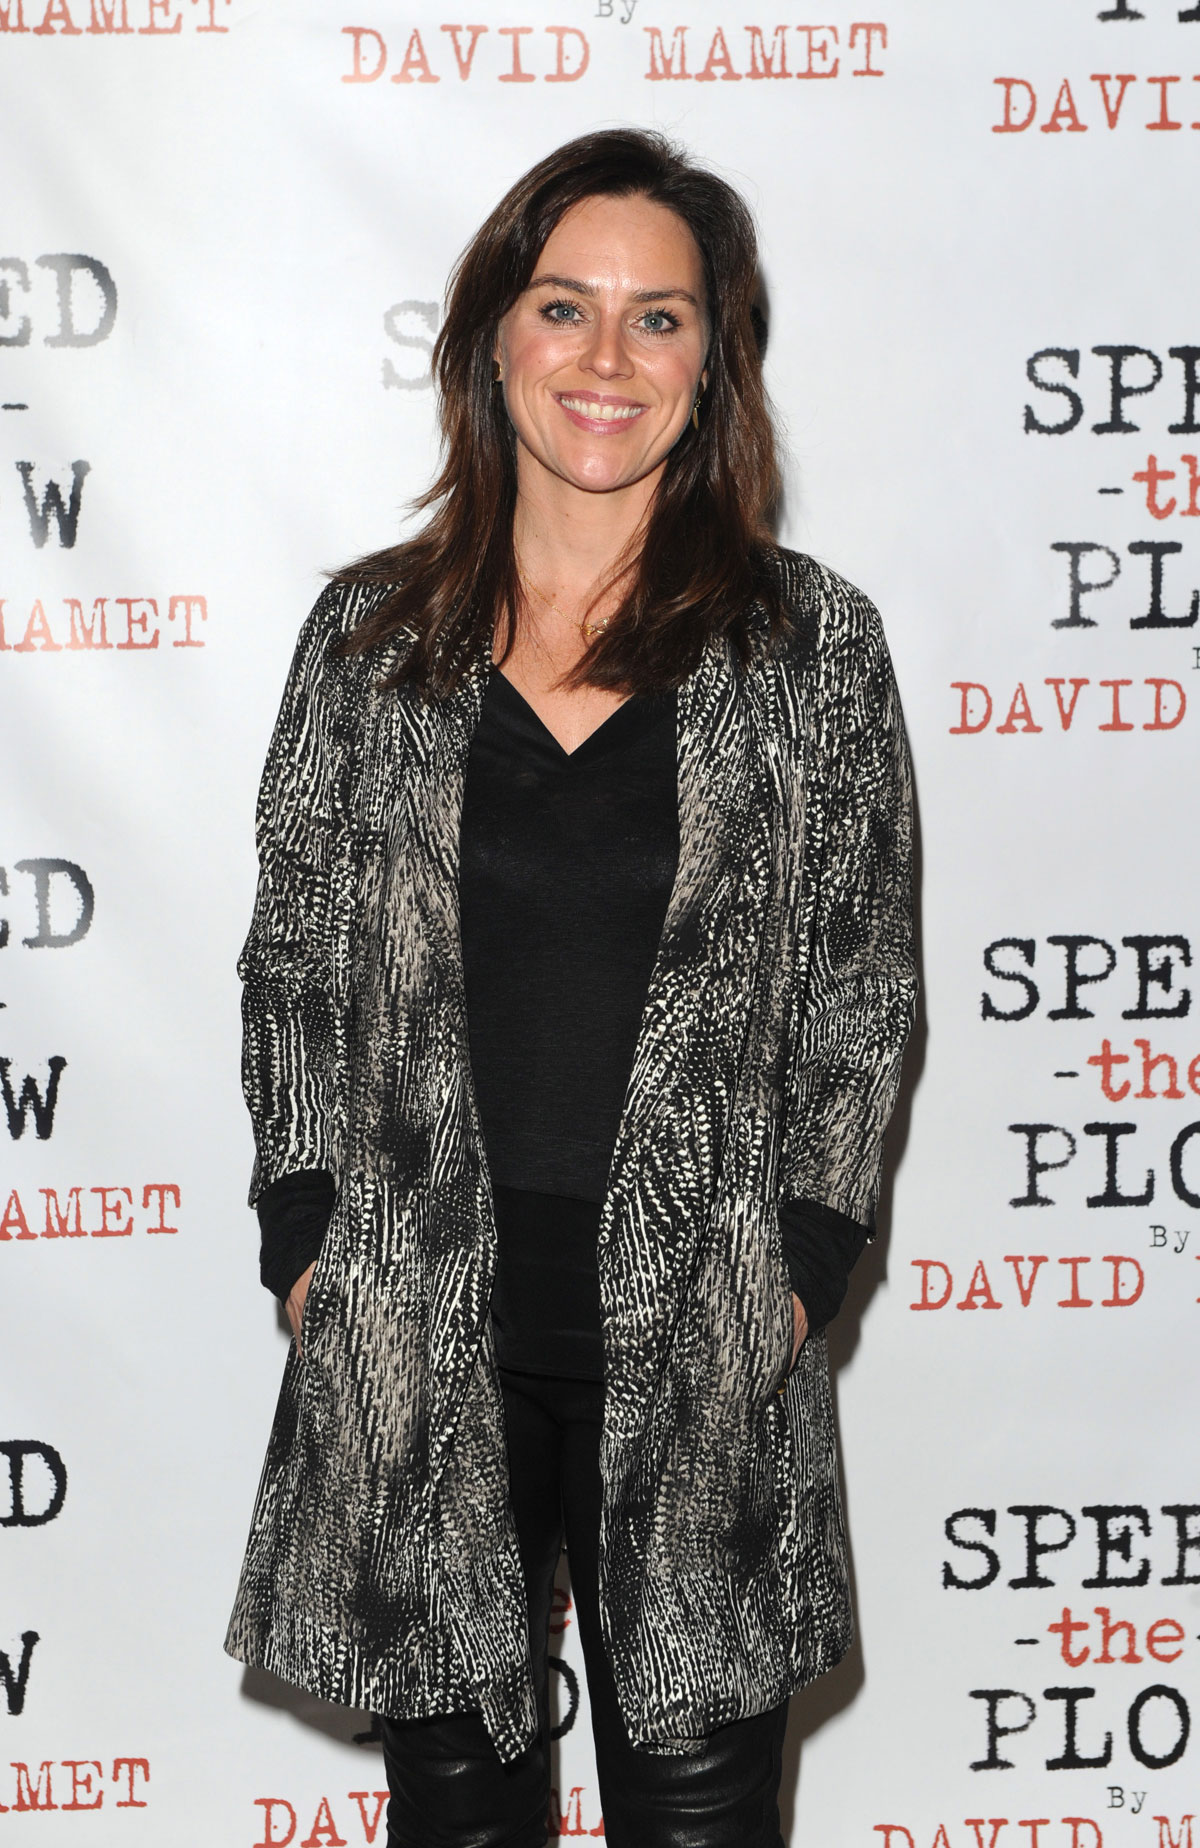 Jill Halfpenny attends Speed-the-Plow after party